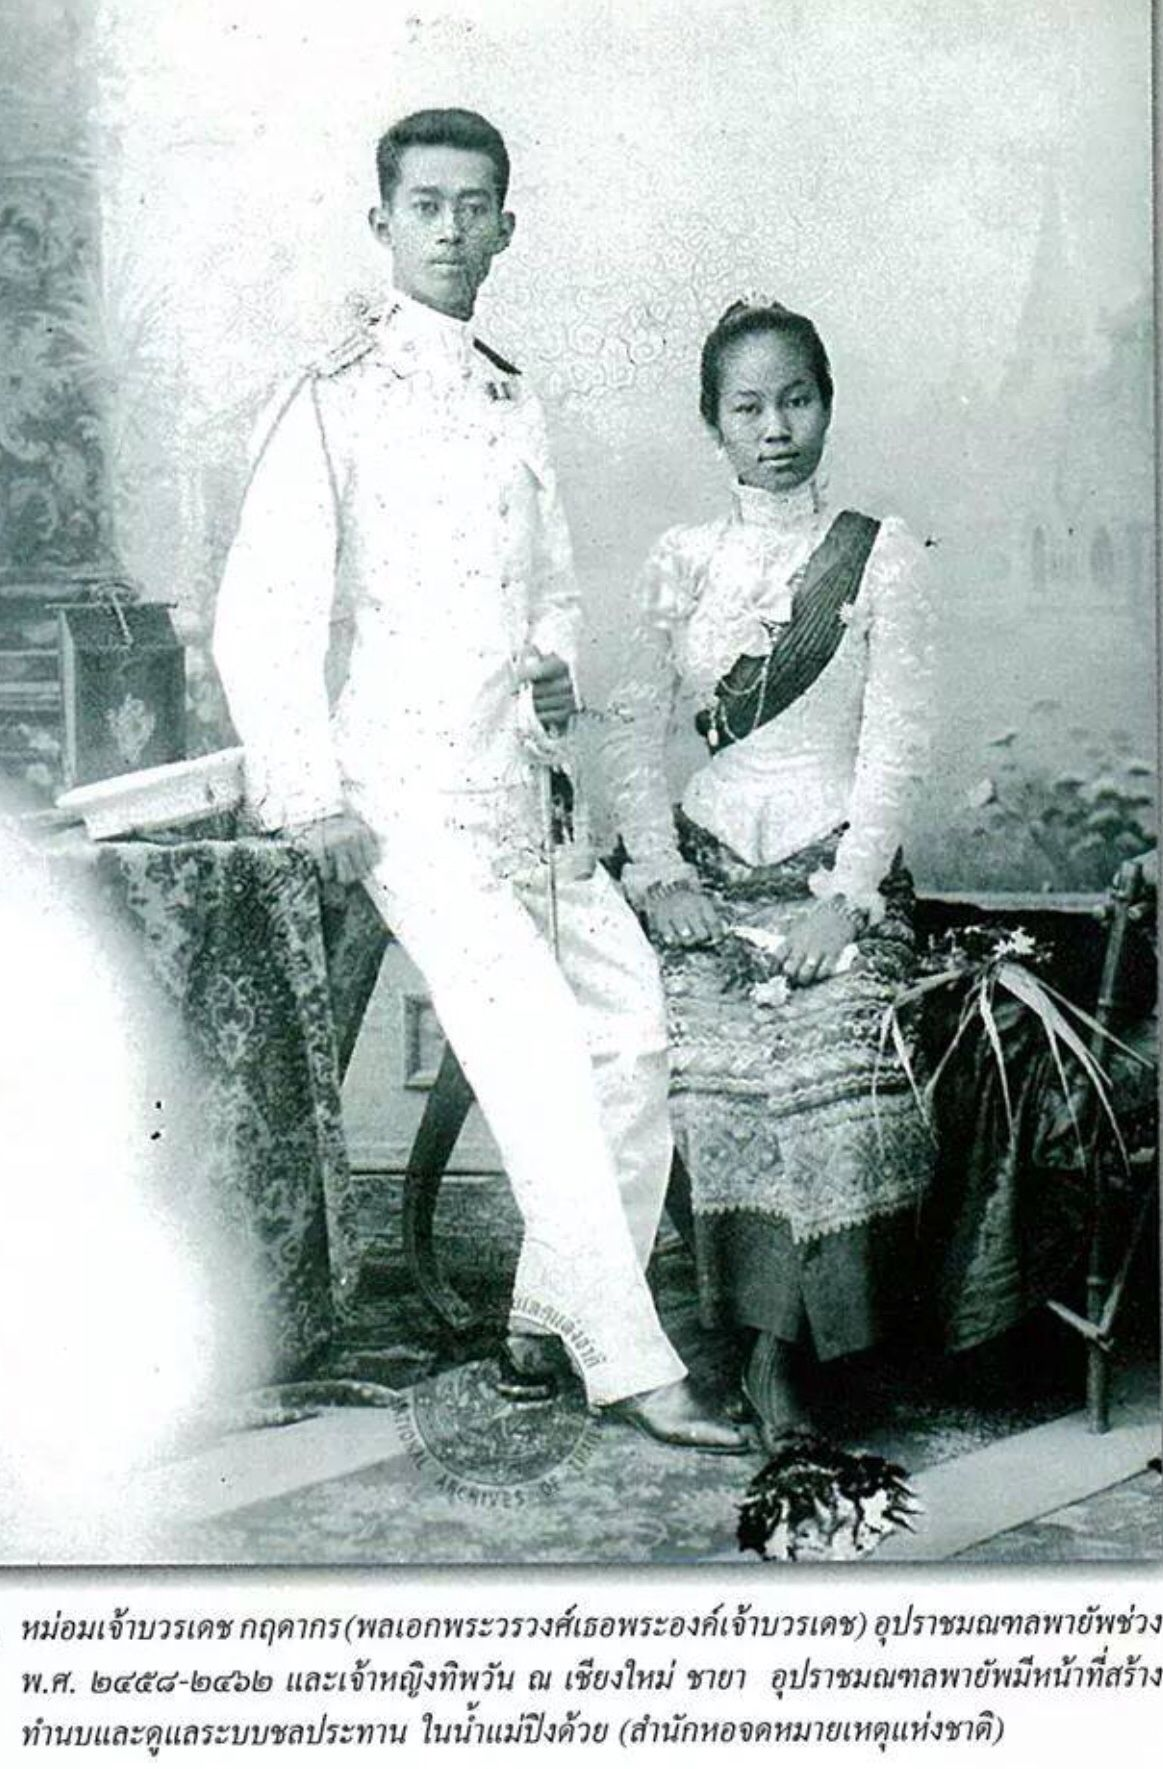 Prince Bavorndech of Thailand and his wife, Tippawan